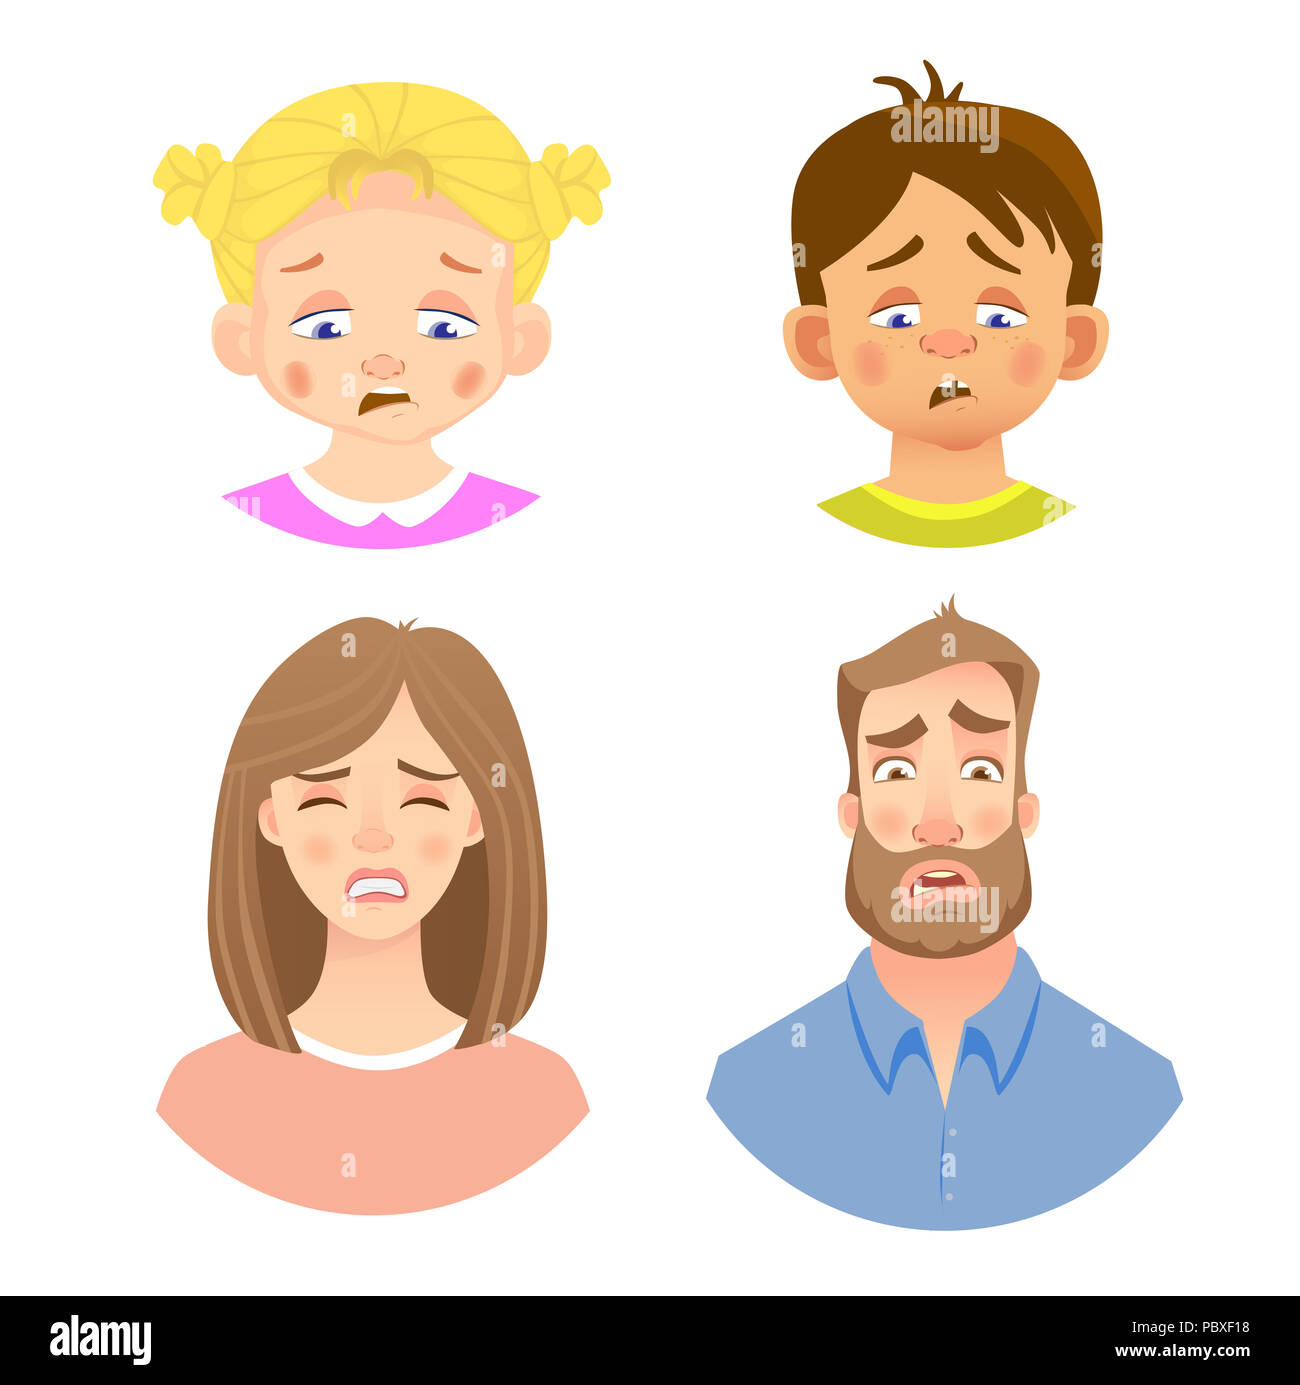 Emotions of human face. Set of avatars with different emotions. Illustration - Stock Image